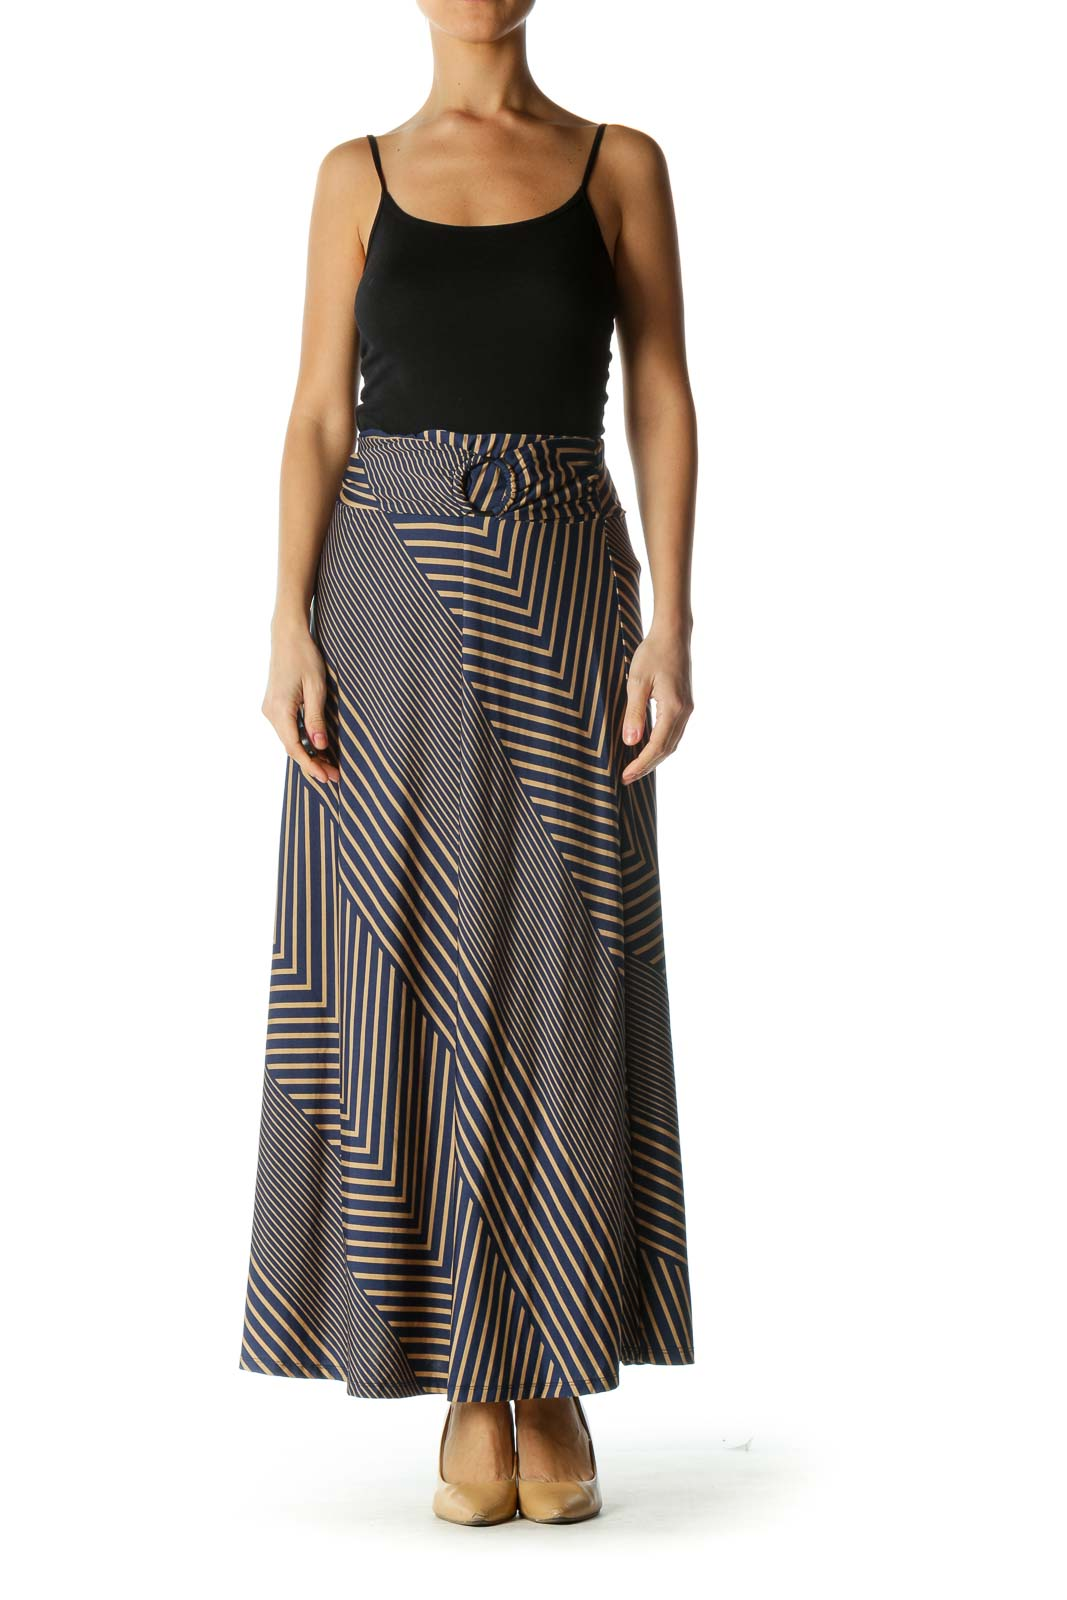 Blue and Brown Striped Flowy Maxi Skirt